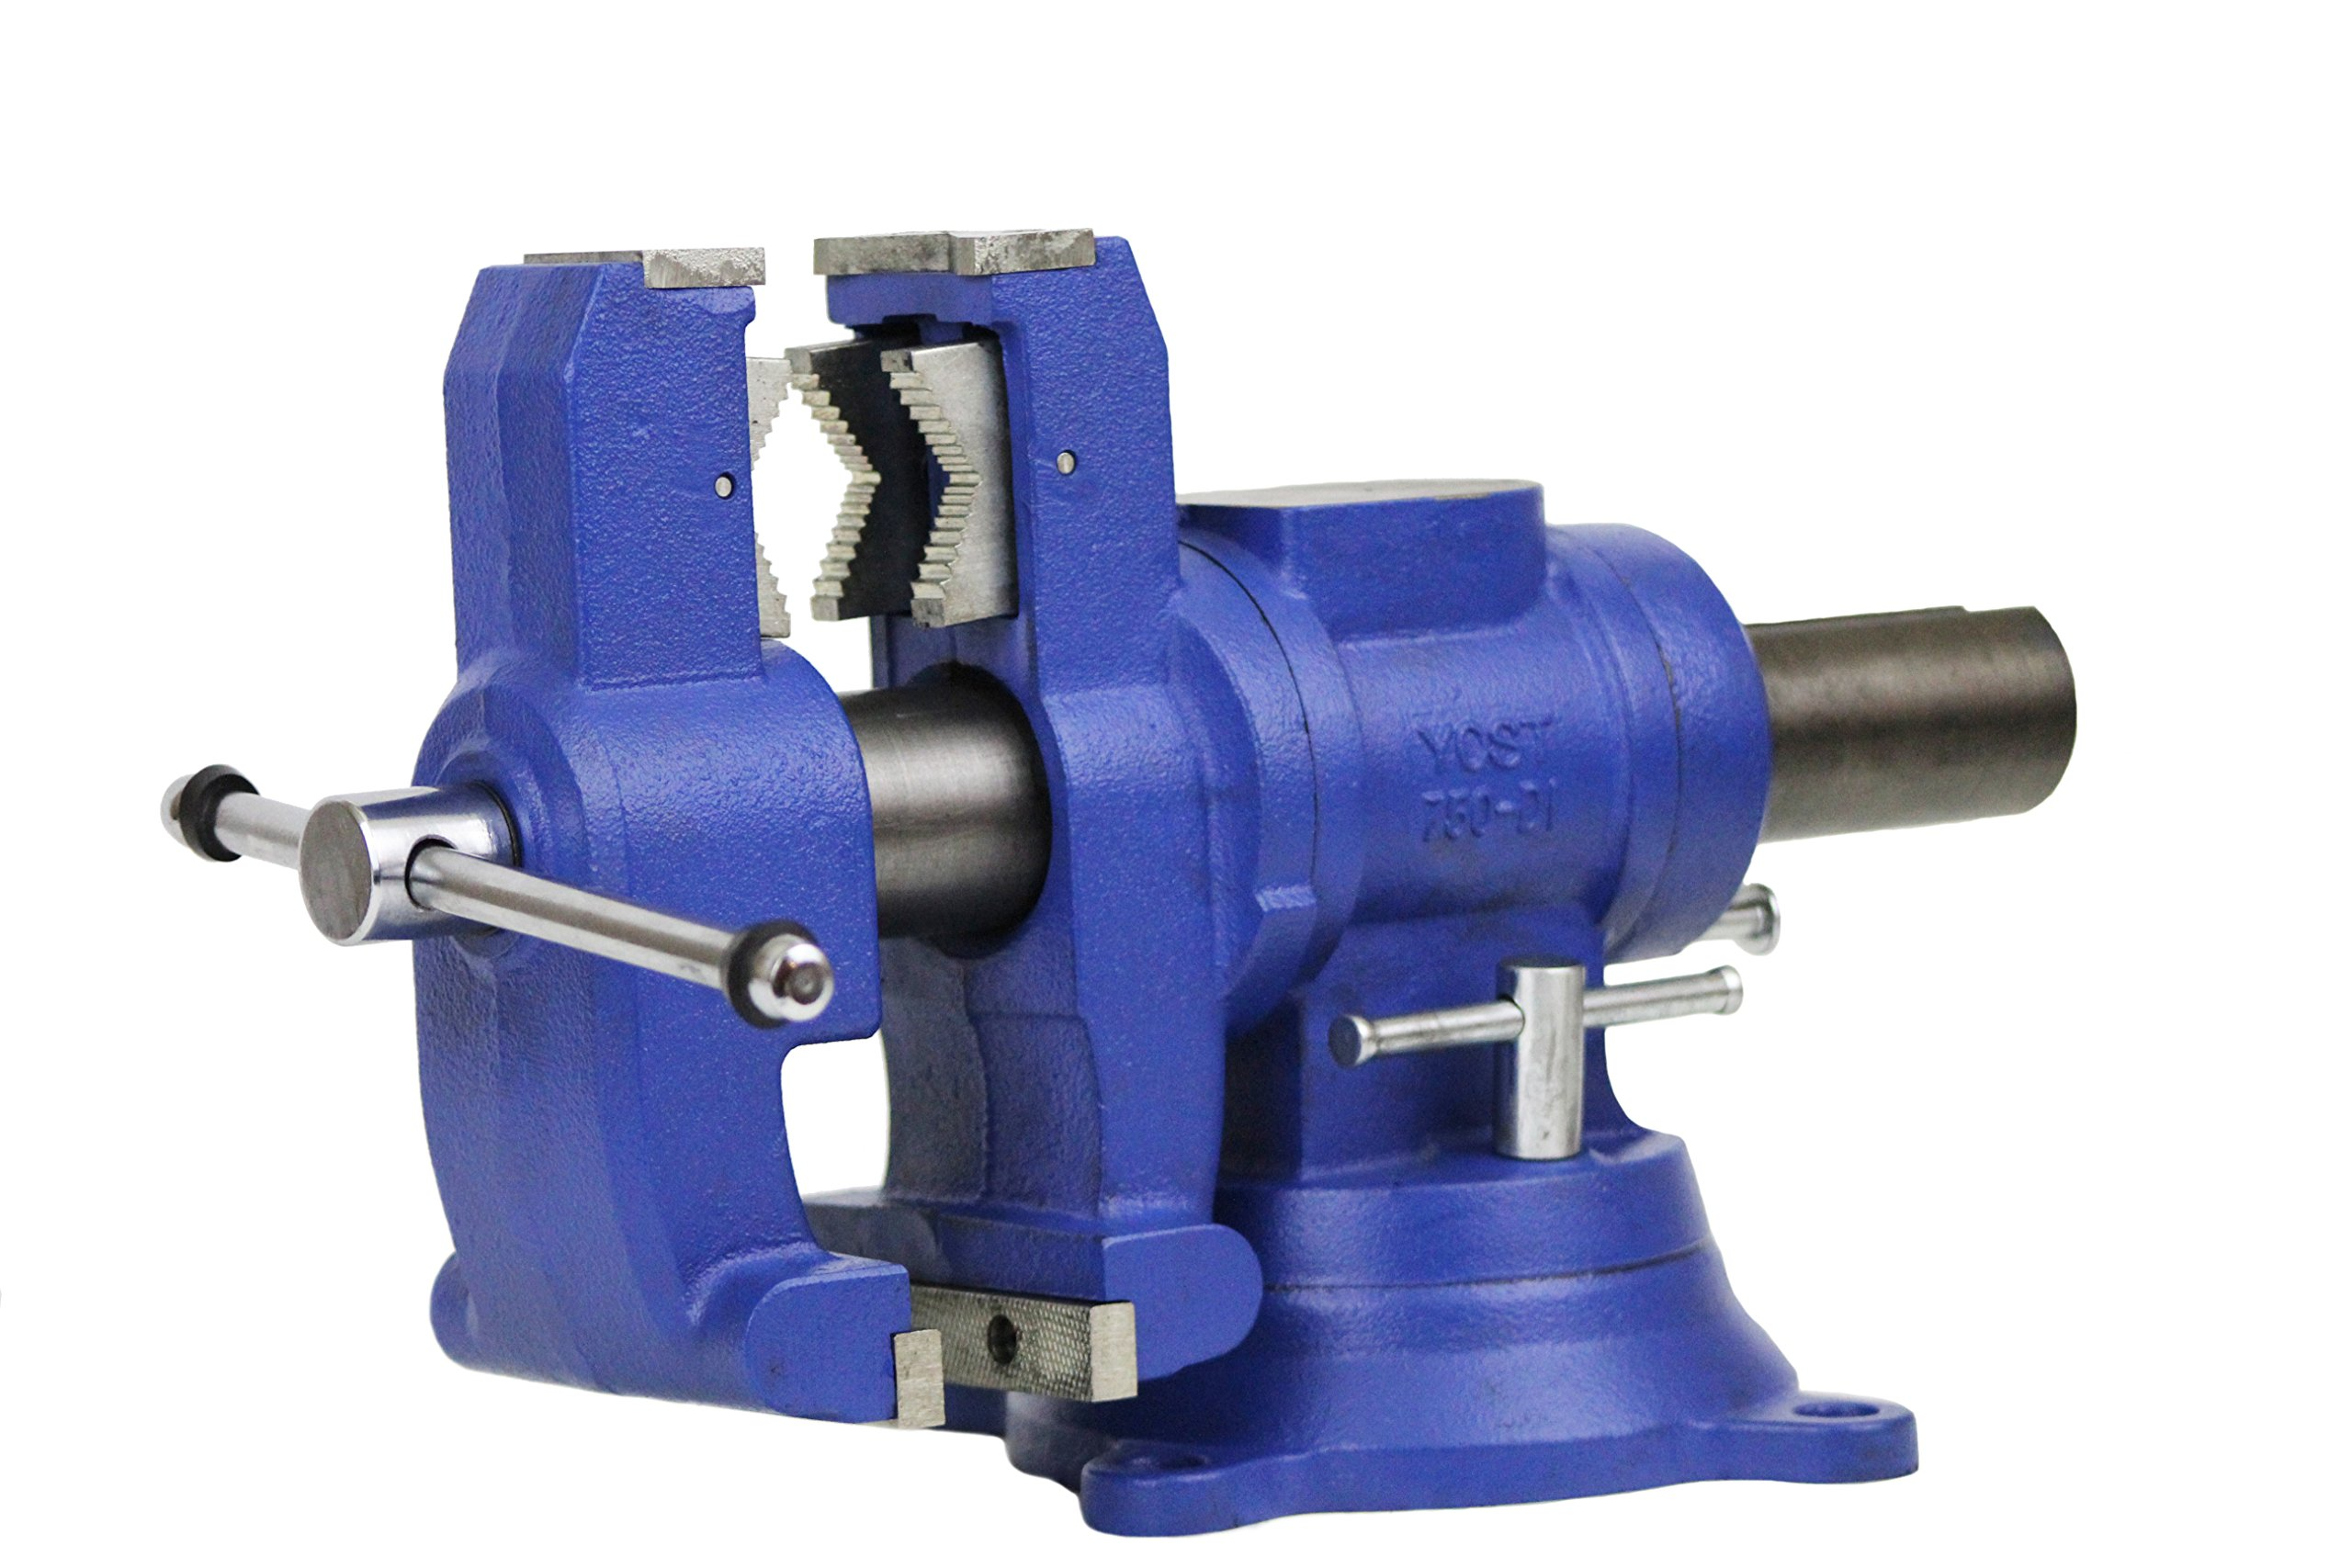 Yost Vises 750-DI 5'' Heavy-Duty Multi-Jaw Rotating Combination Pipe and Bench Vise with 360-Degree Swivel Base and Head by Yost Tools (Image #2)